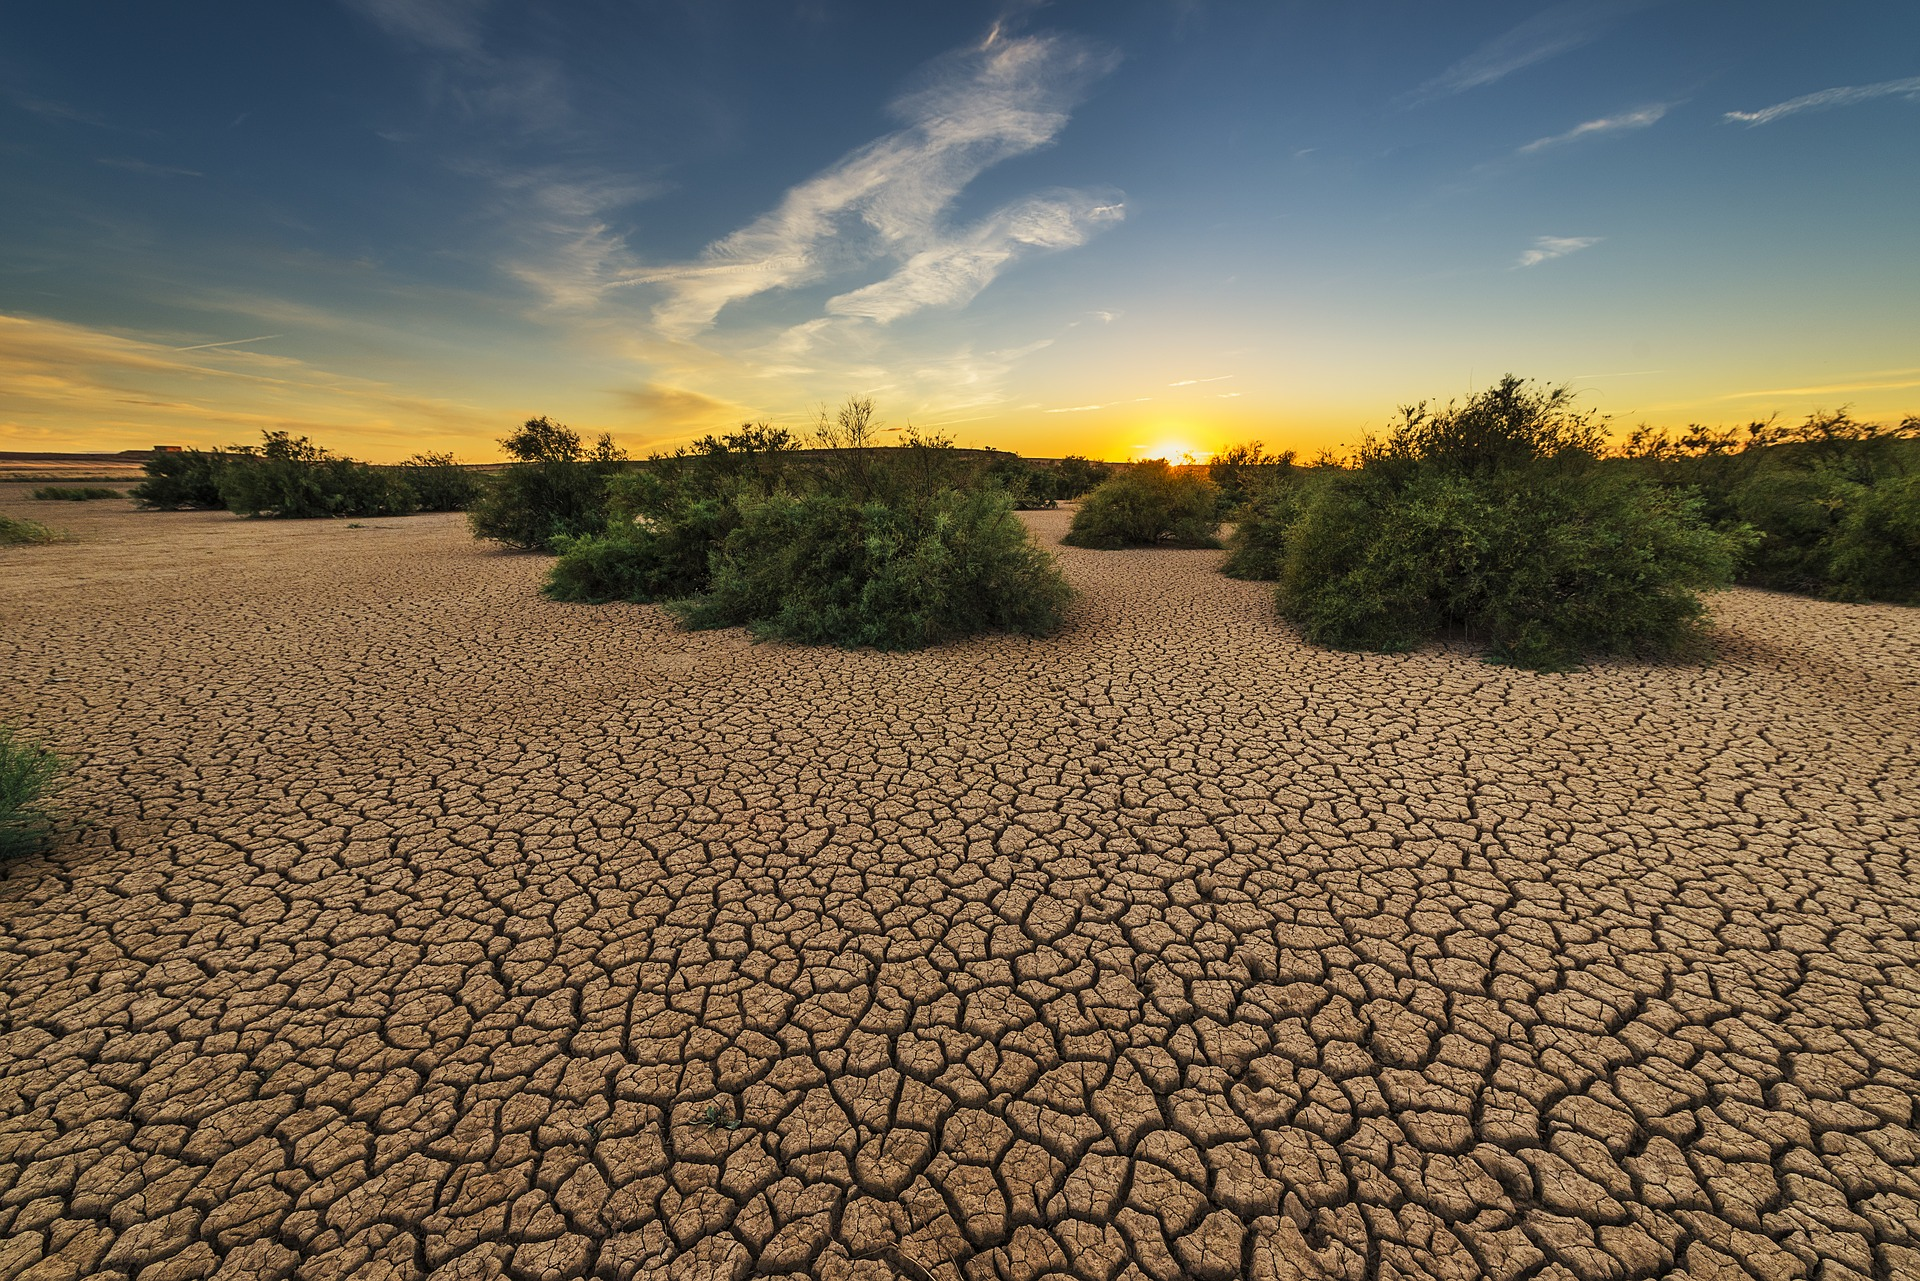 Drought – Psalm 126